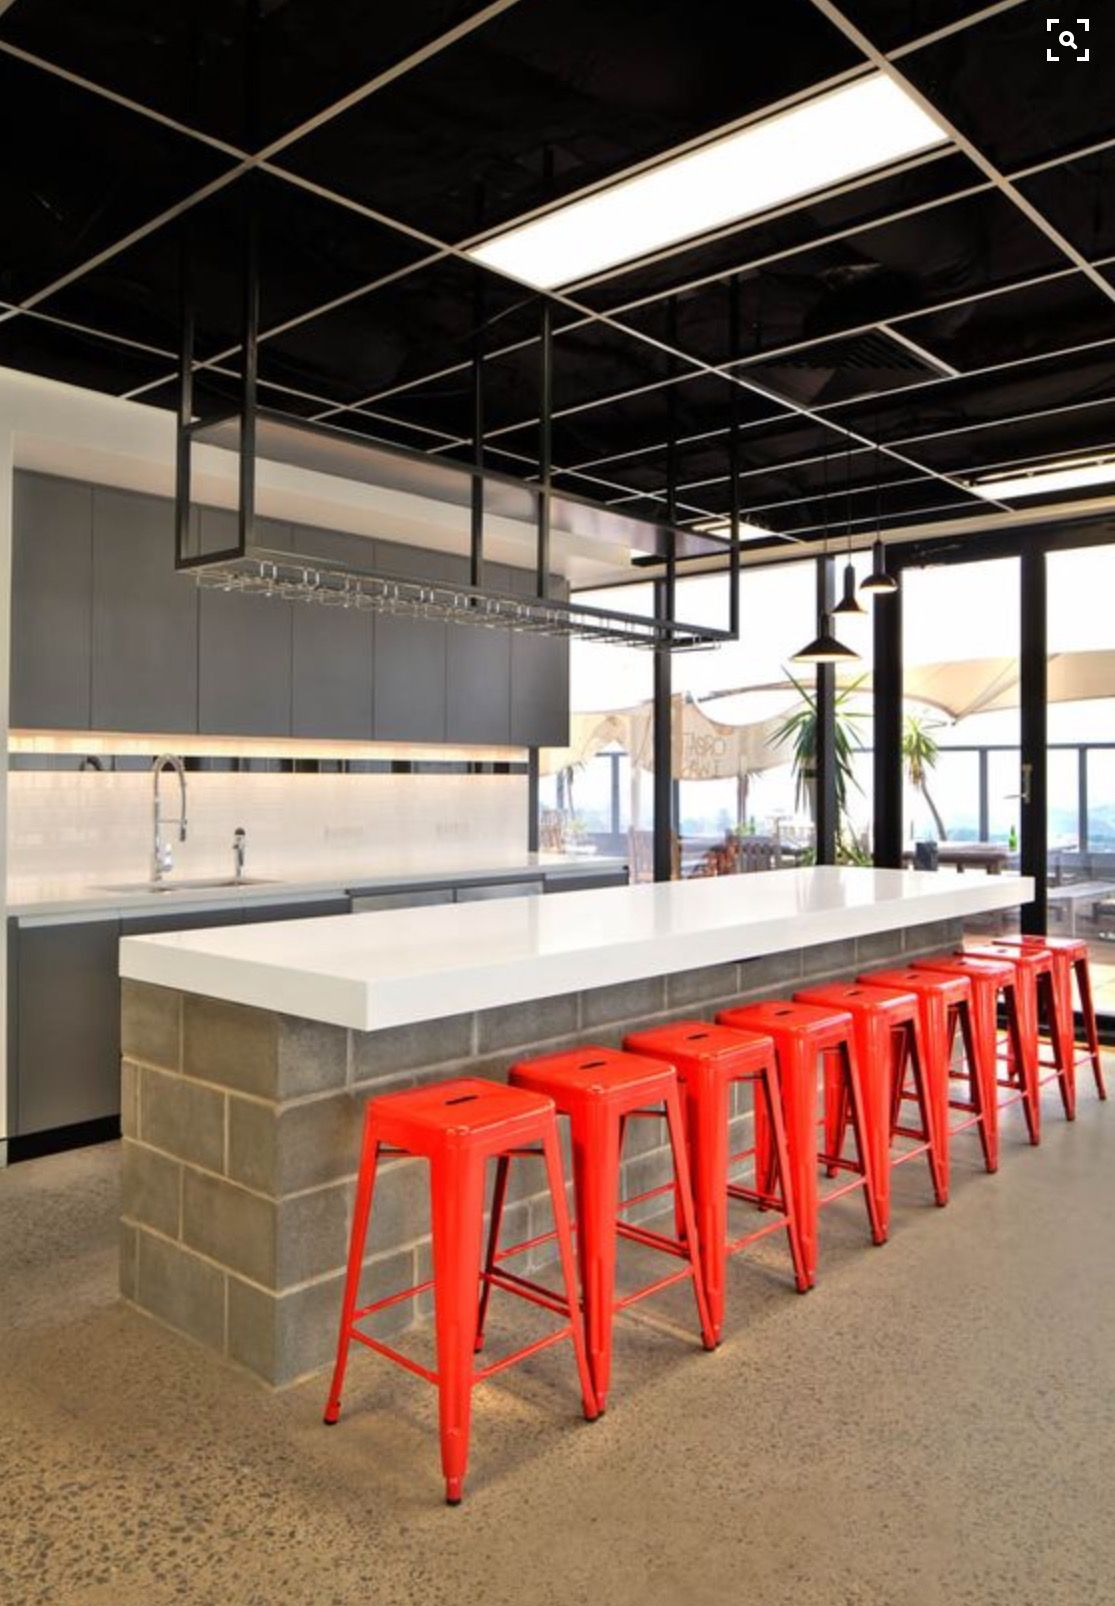 Pin By Lori Ryherd On Emerson Collaboration Space Dining